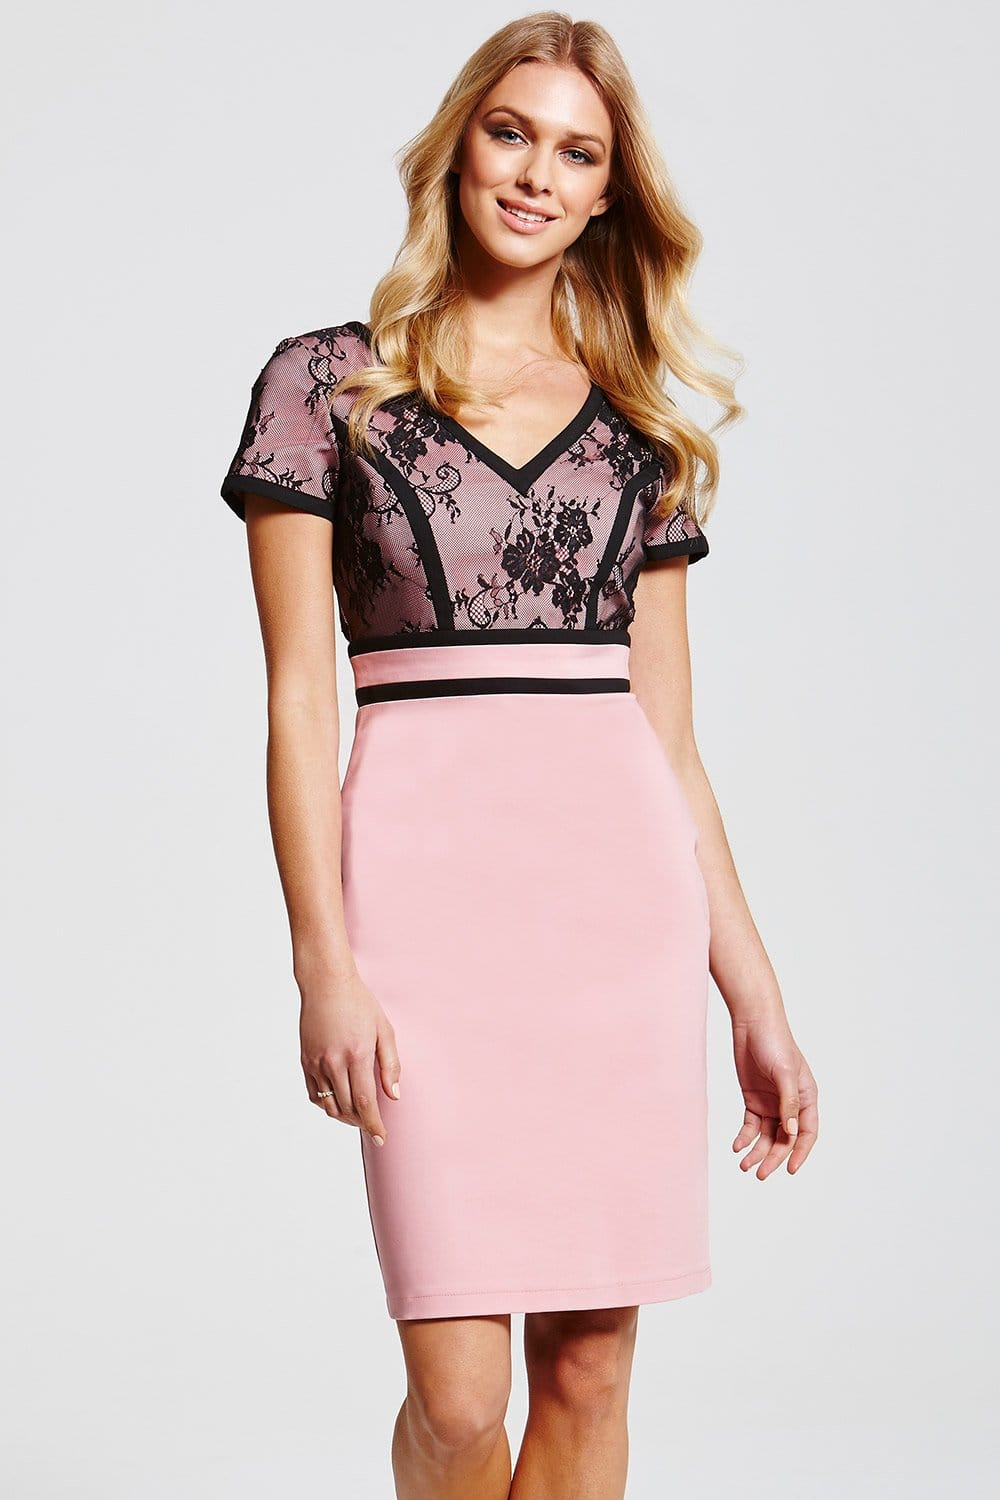 Find great deals on eBay for women's black pink lace dress. Shop with confidence.